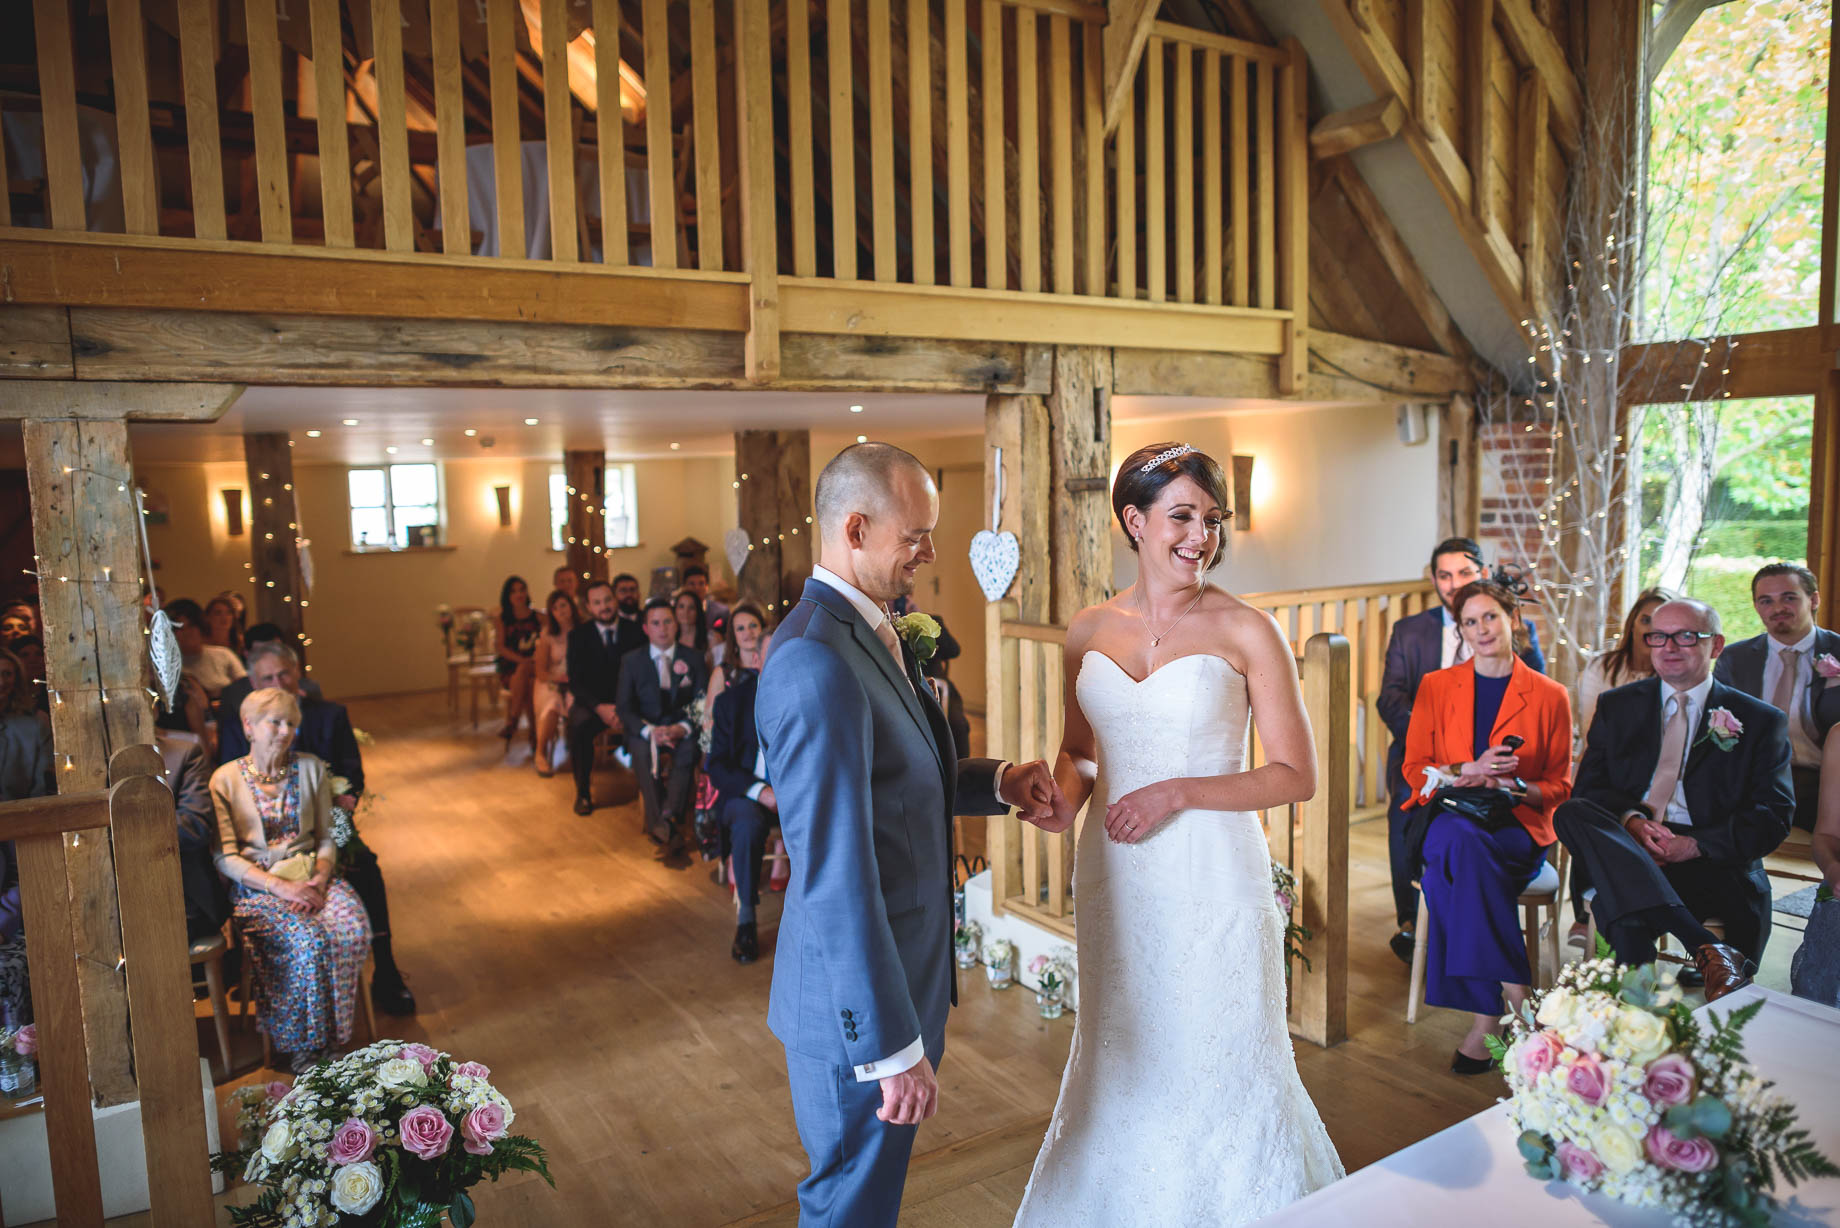 Bury Court Barn wedding photography - Guy Collier Photography - Karen and John (55 of 166)